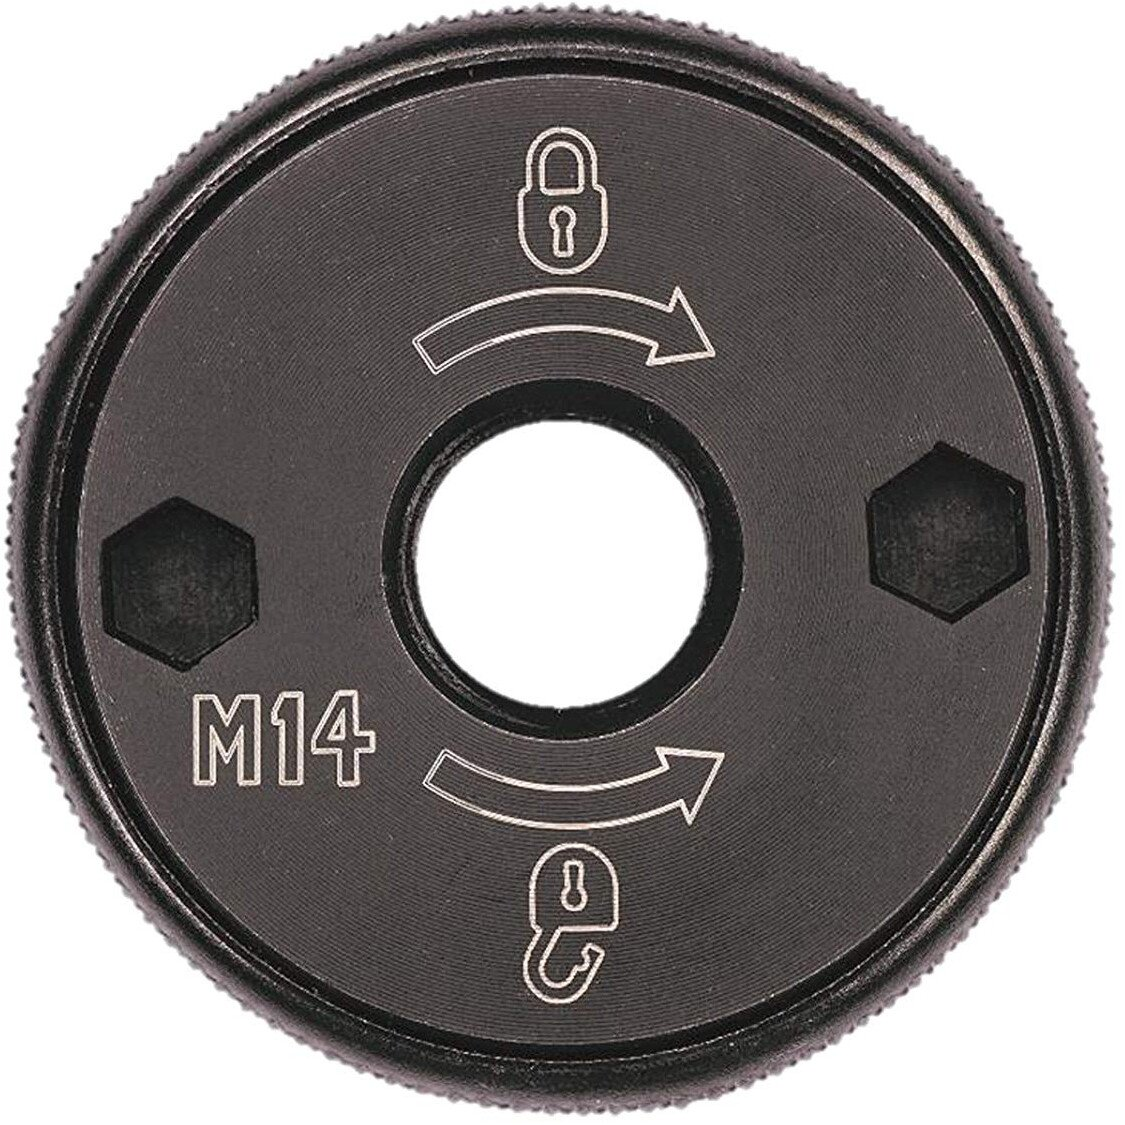 DeWalt DT3559-QZ M14 Locking Grinder Nut